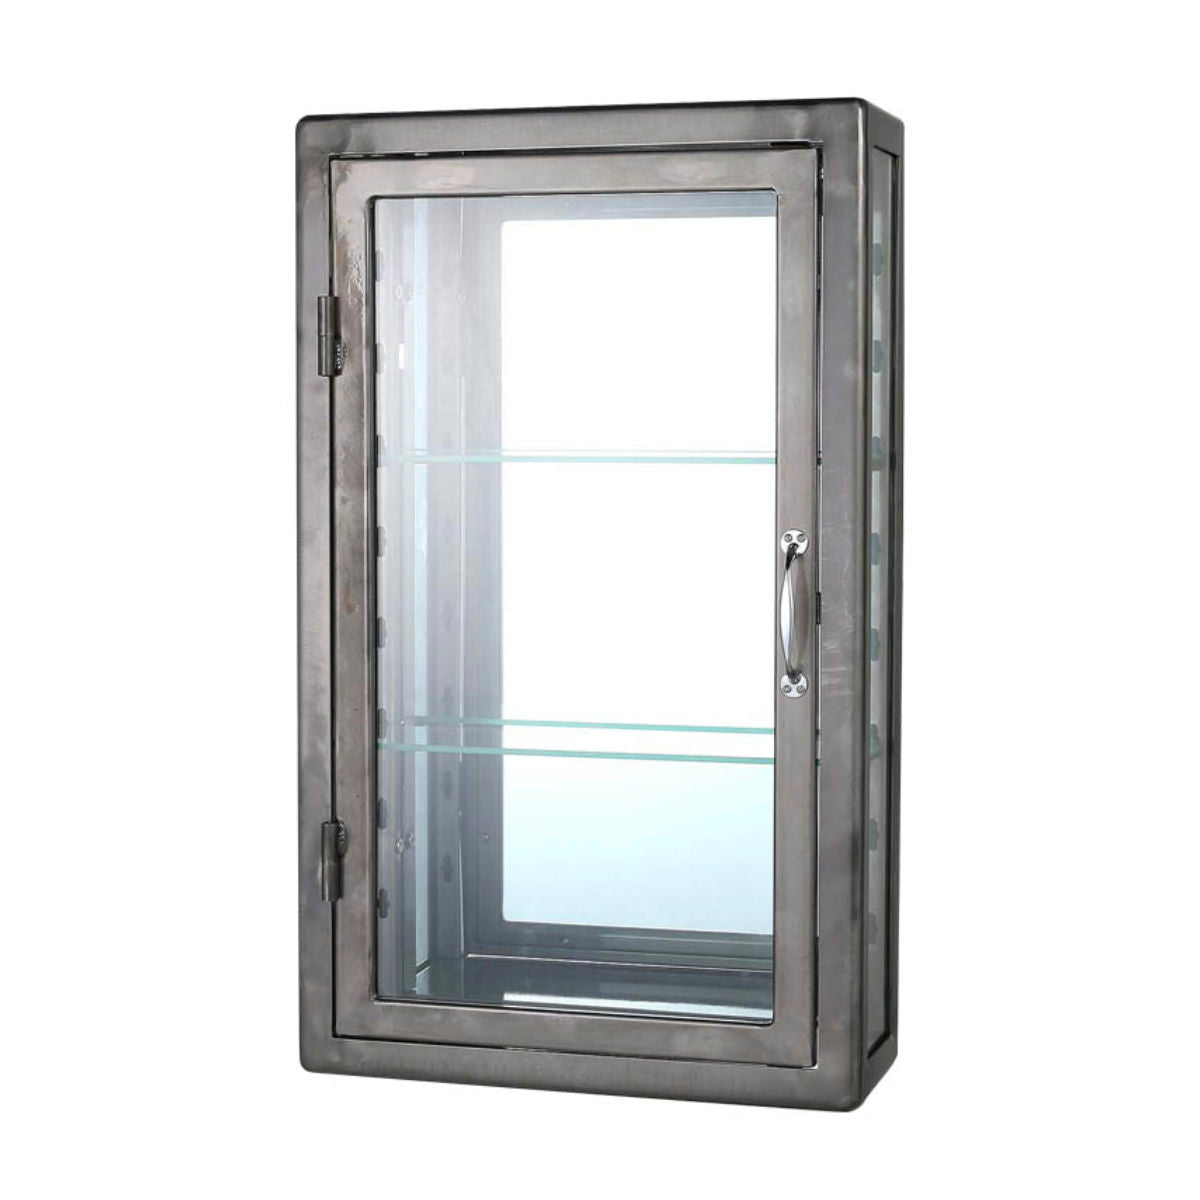 Dulton Wall Mount Glass Cabinet, raw